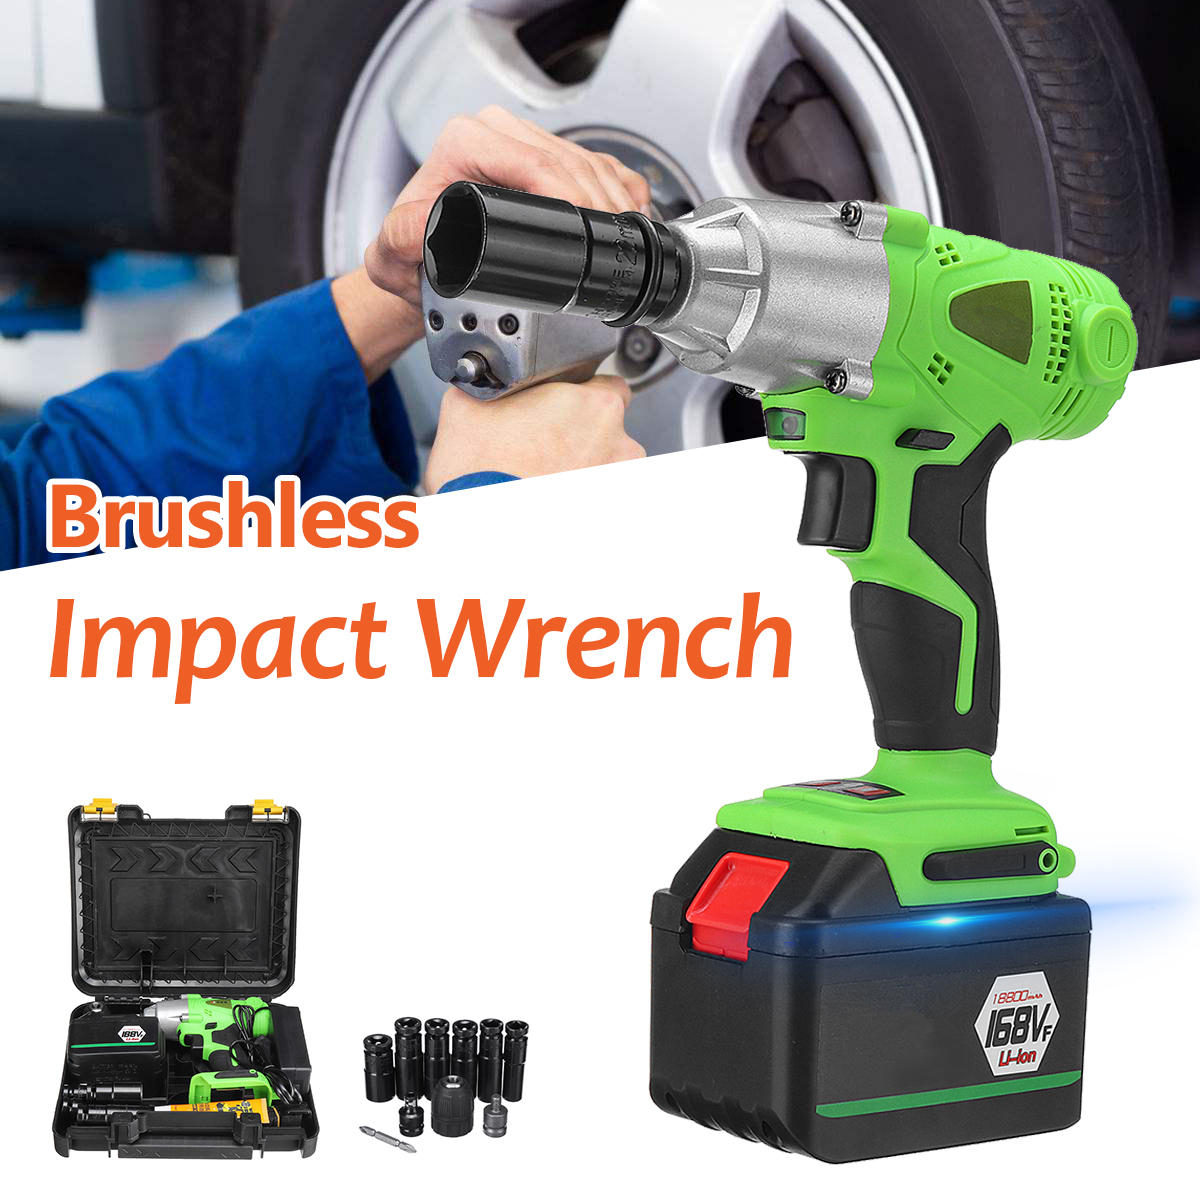 98/128VF Brushless Cordless Impact Wrench Drill Socket 0-2500 RPM 10MM LED Light Electric Screwdriver Home Garden